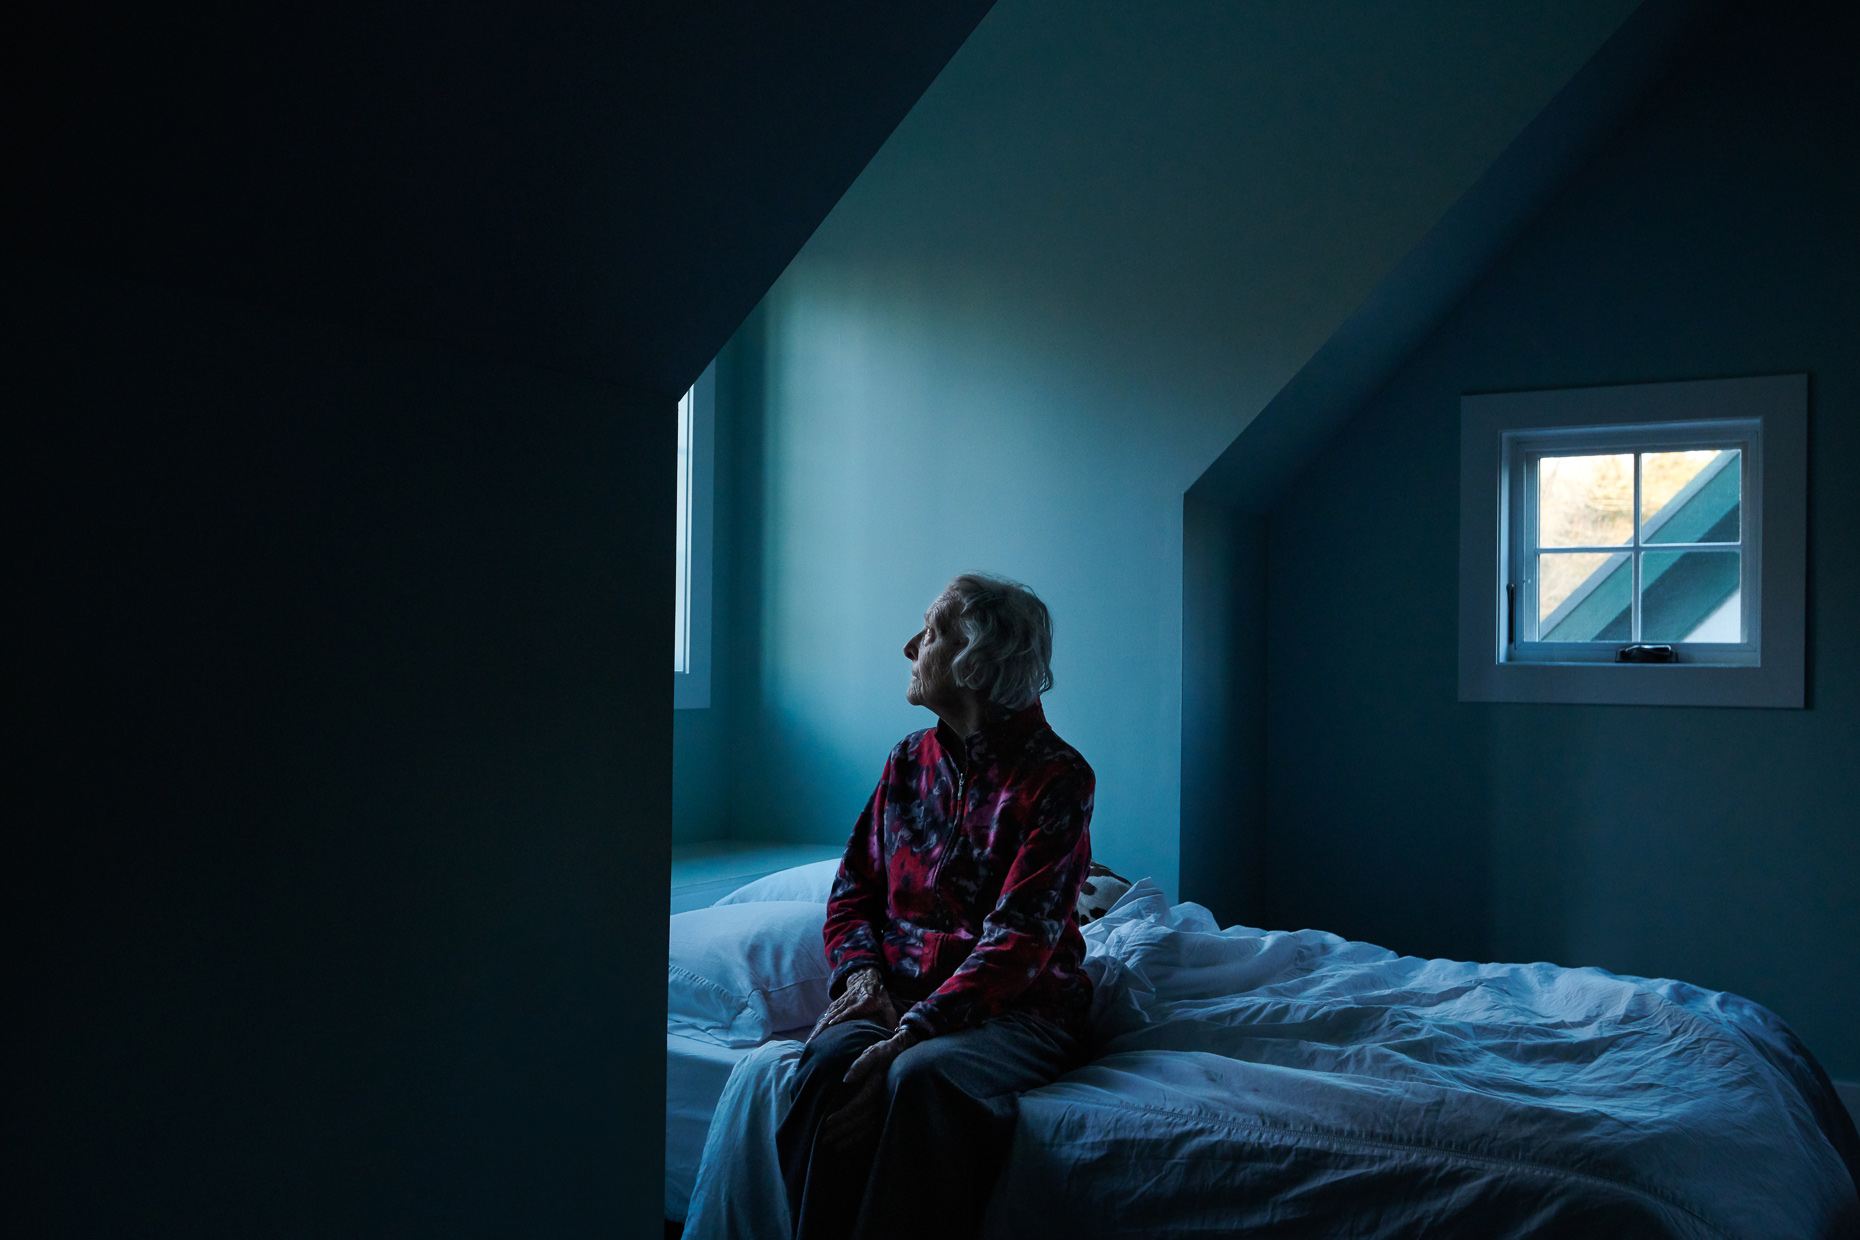 Personal Photography Project: Vignettes - Elderly mom sitting on bed by window